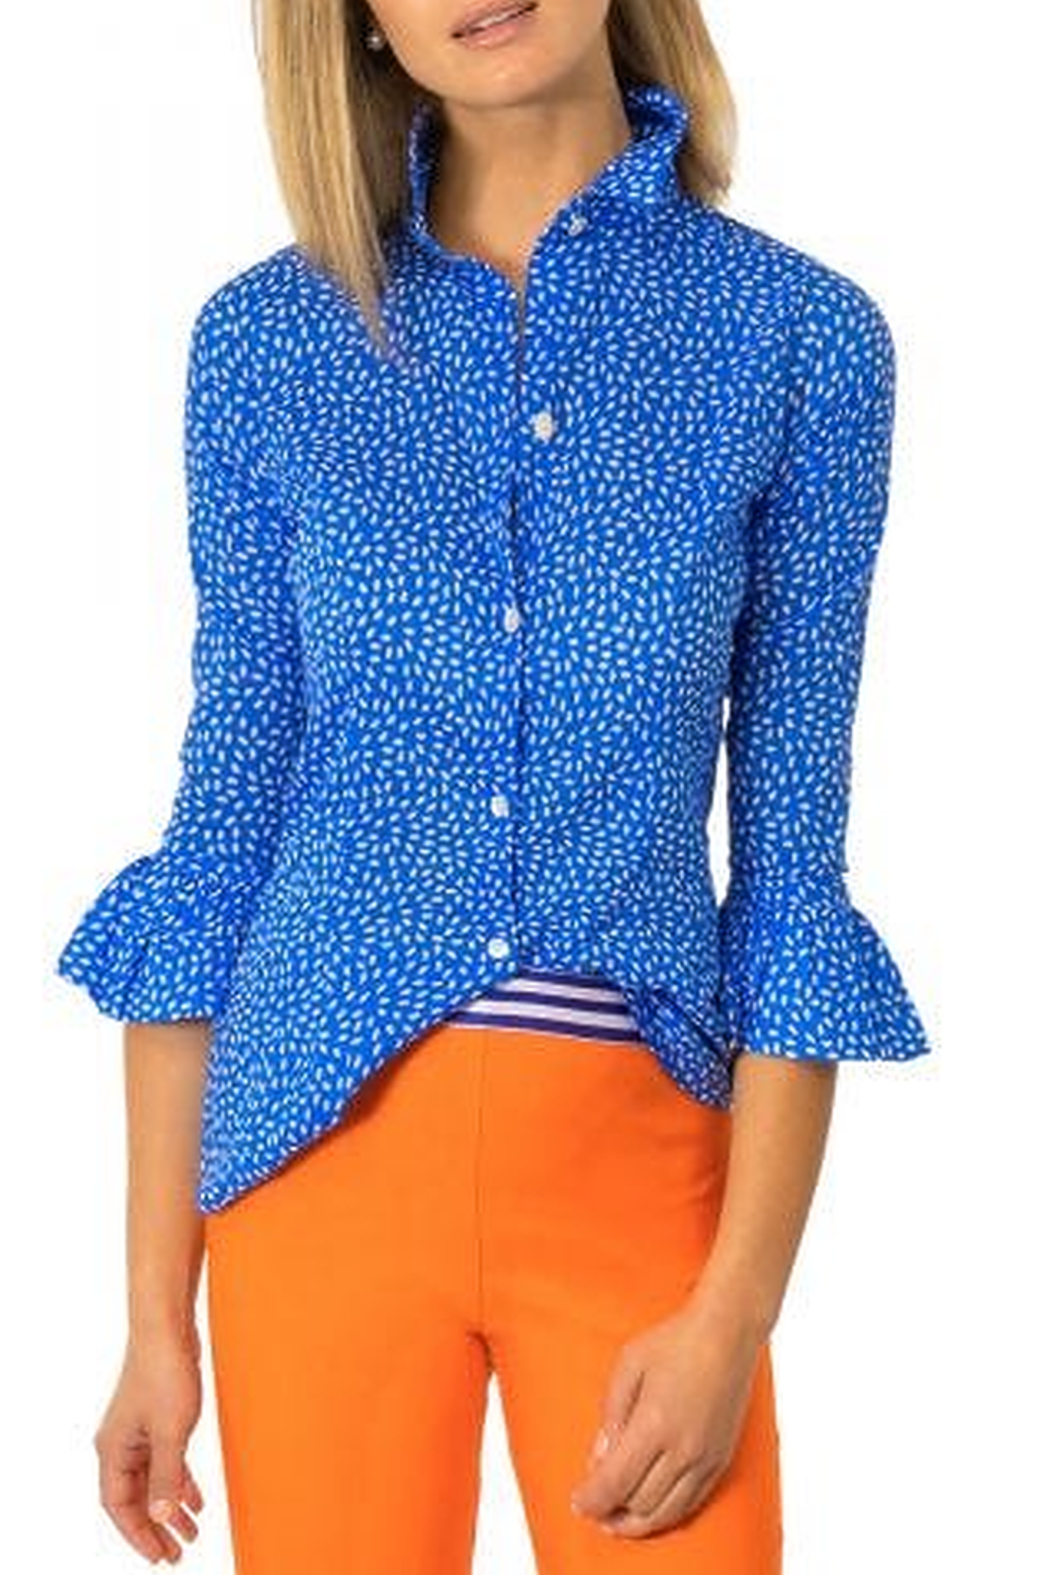 Gretchen Scott Priss Blouse - Main Image